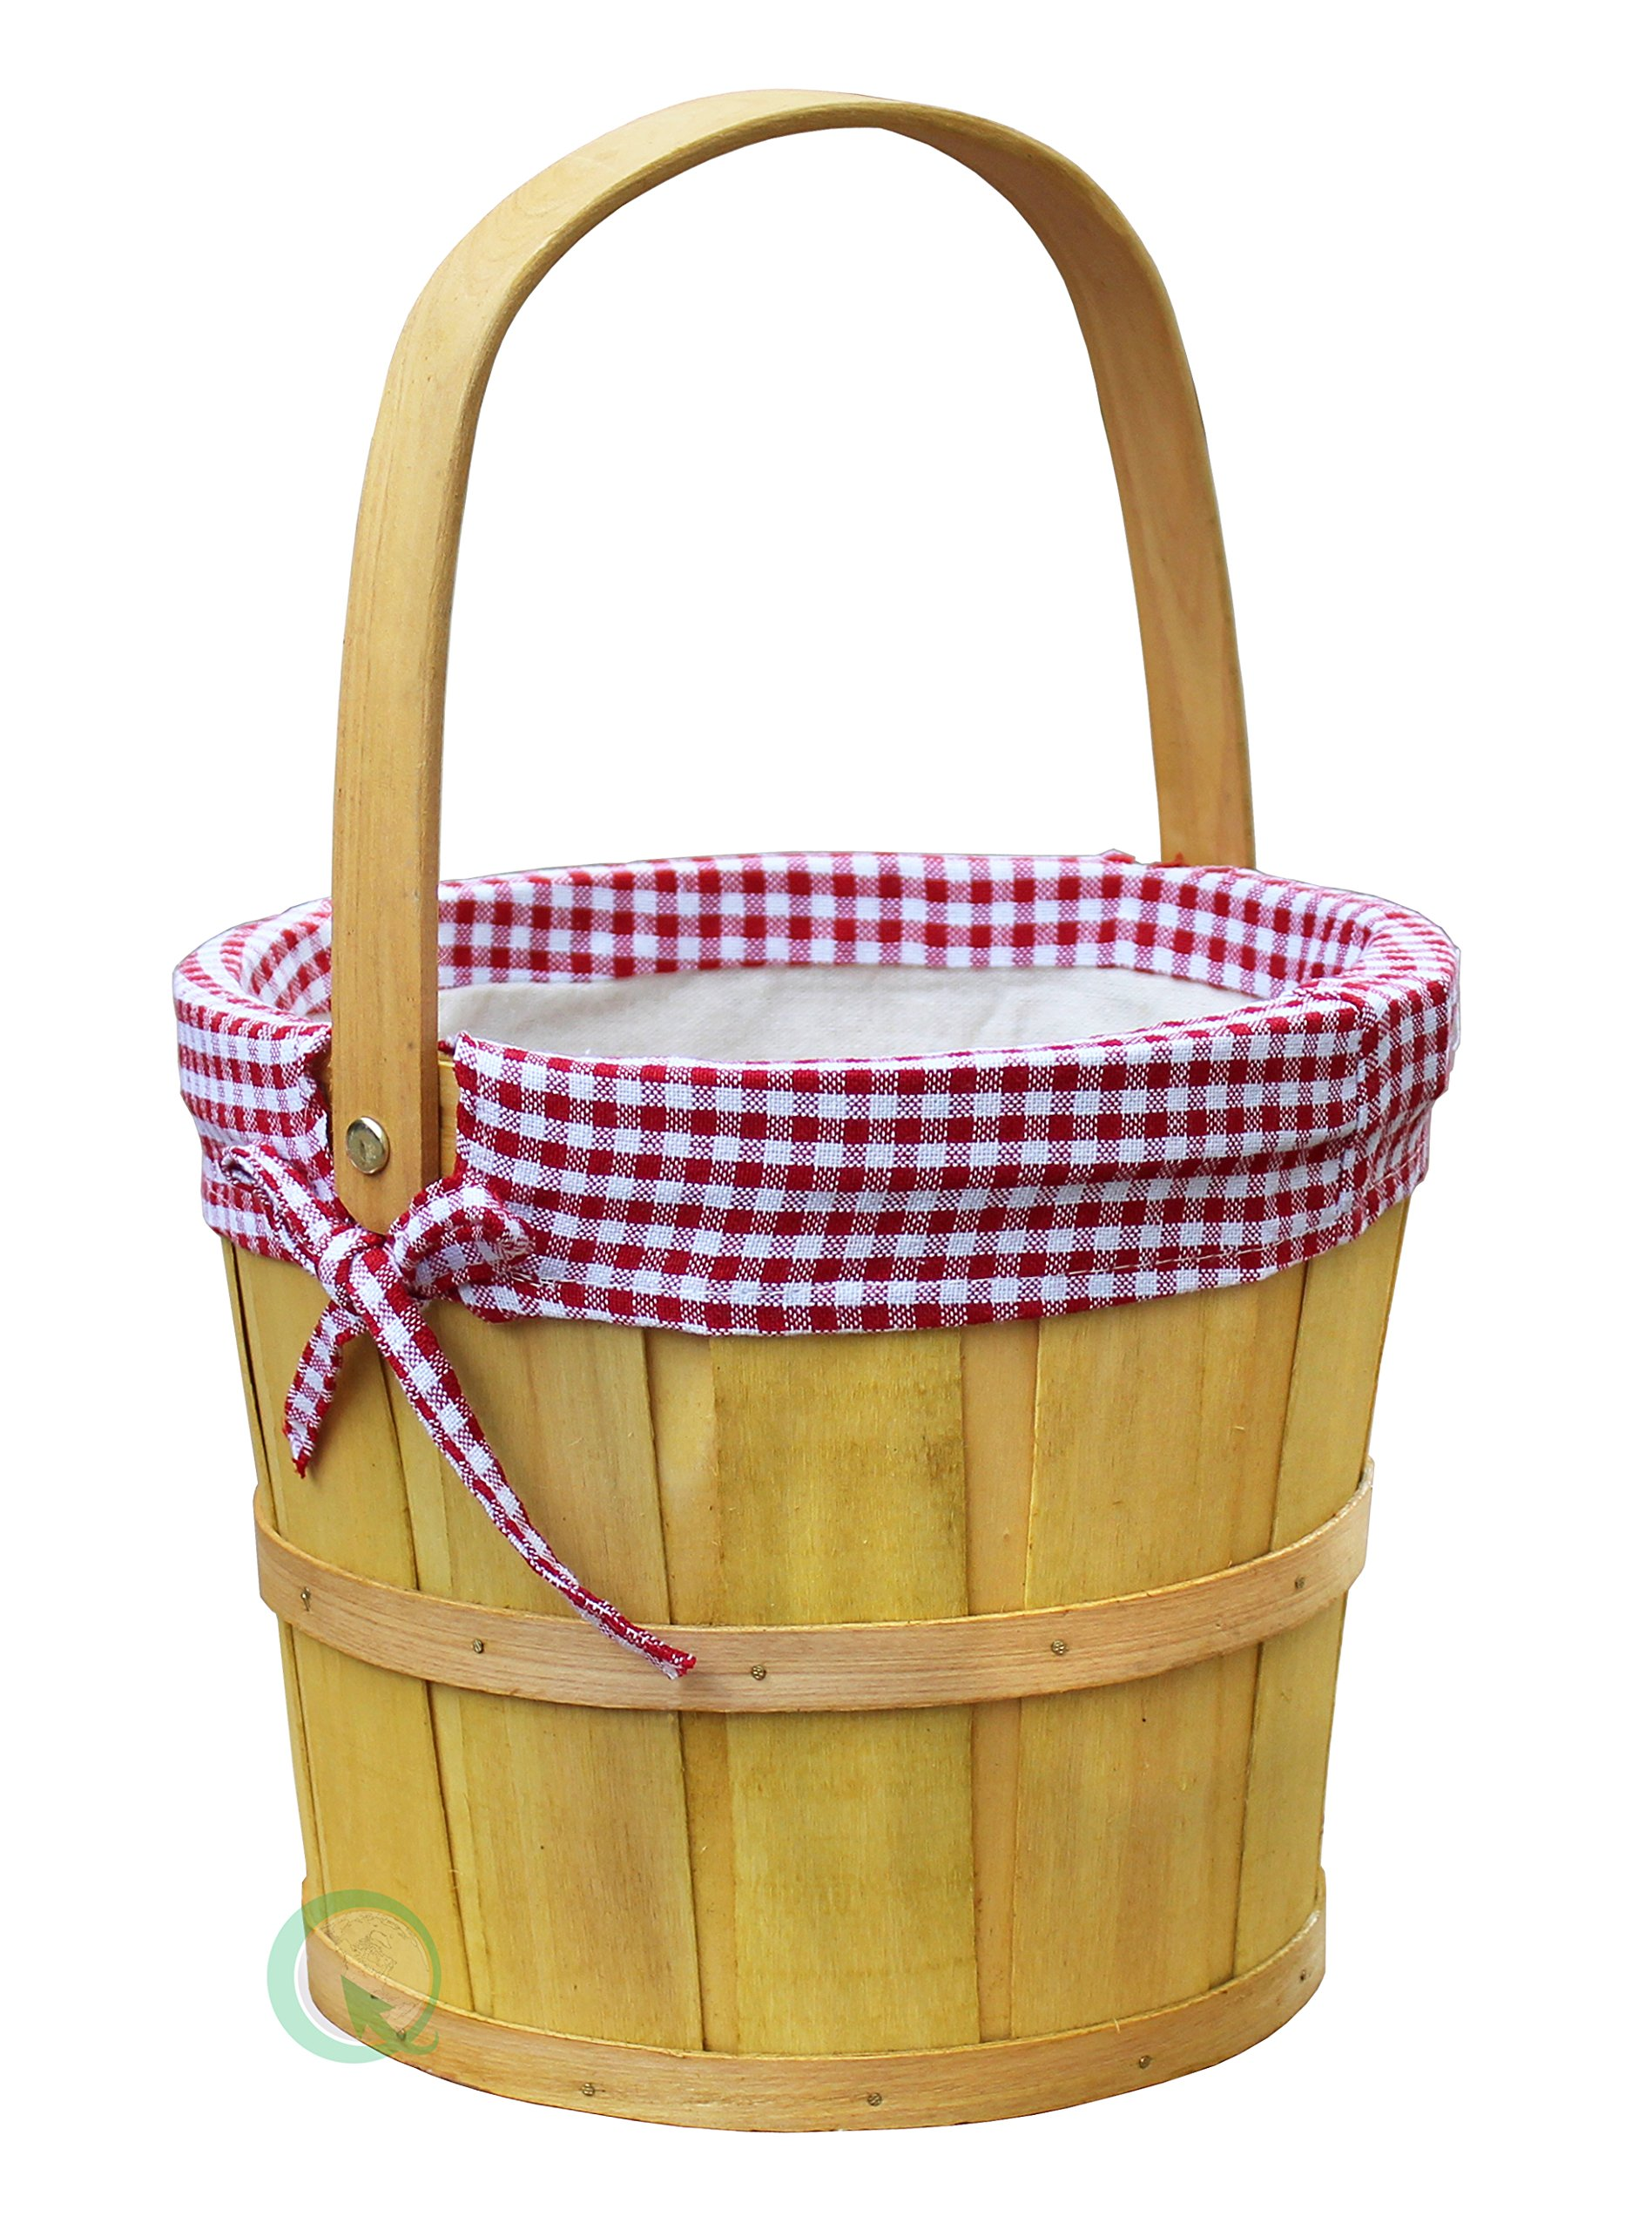 Vintiquewise(TM) Woodchip Bushel Basket with Red Ginghan Lining by Vintiquewise (Image #1)